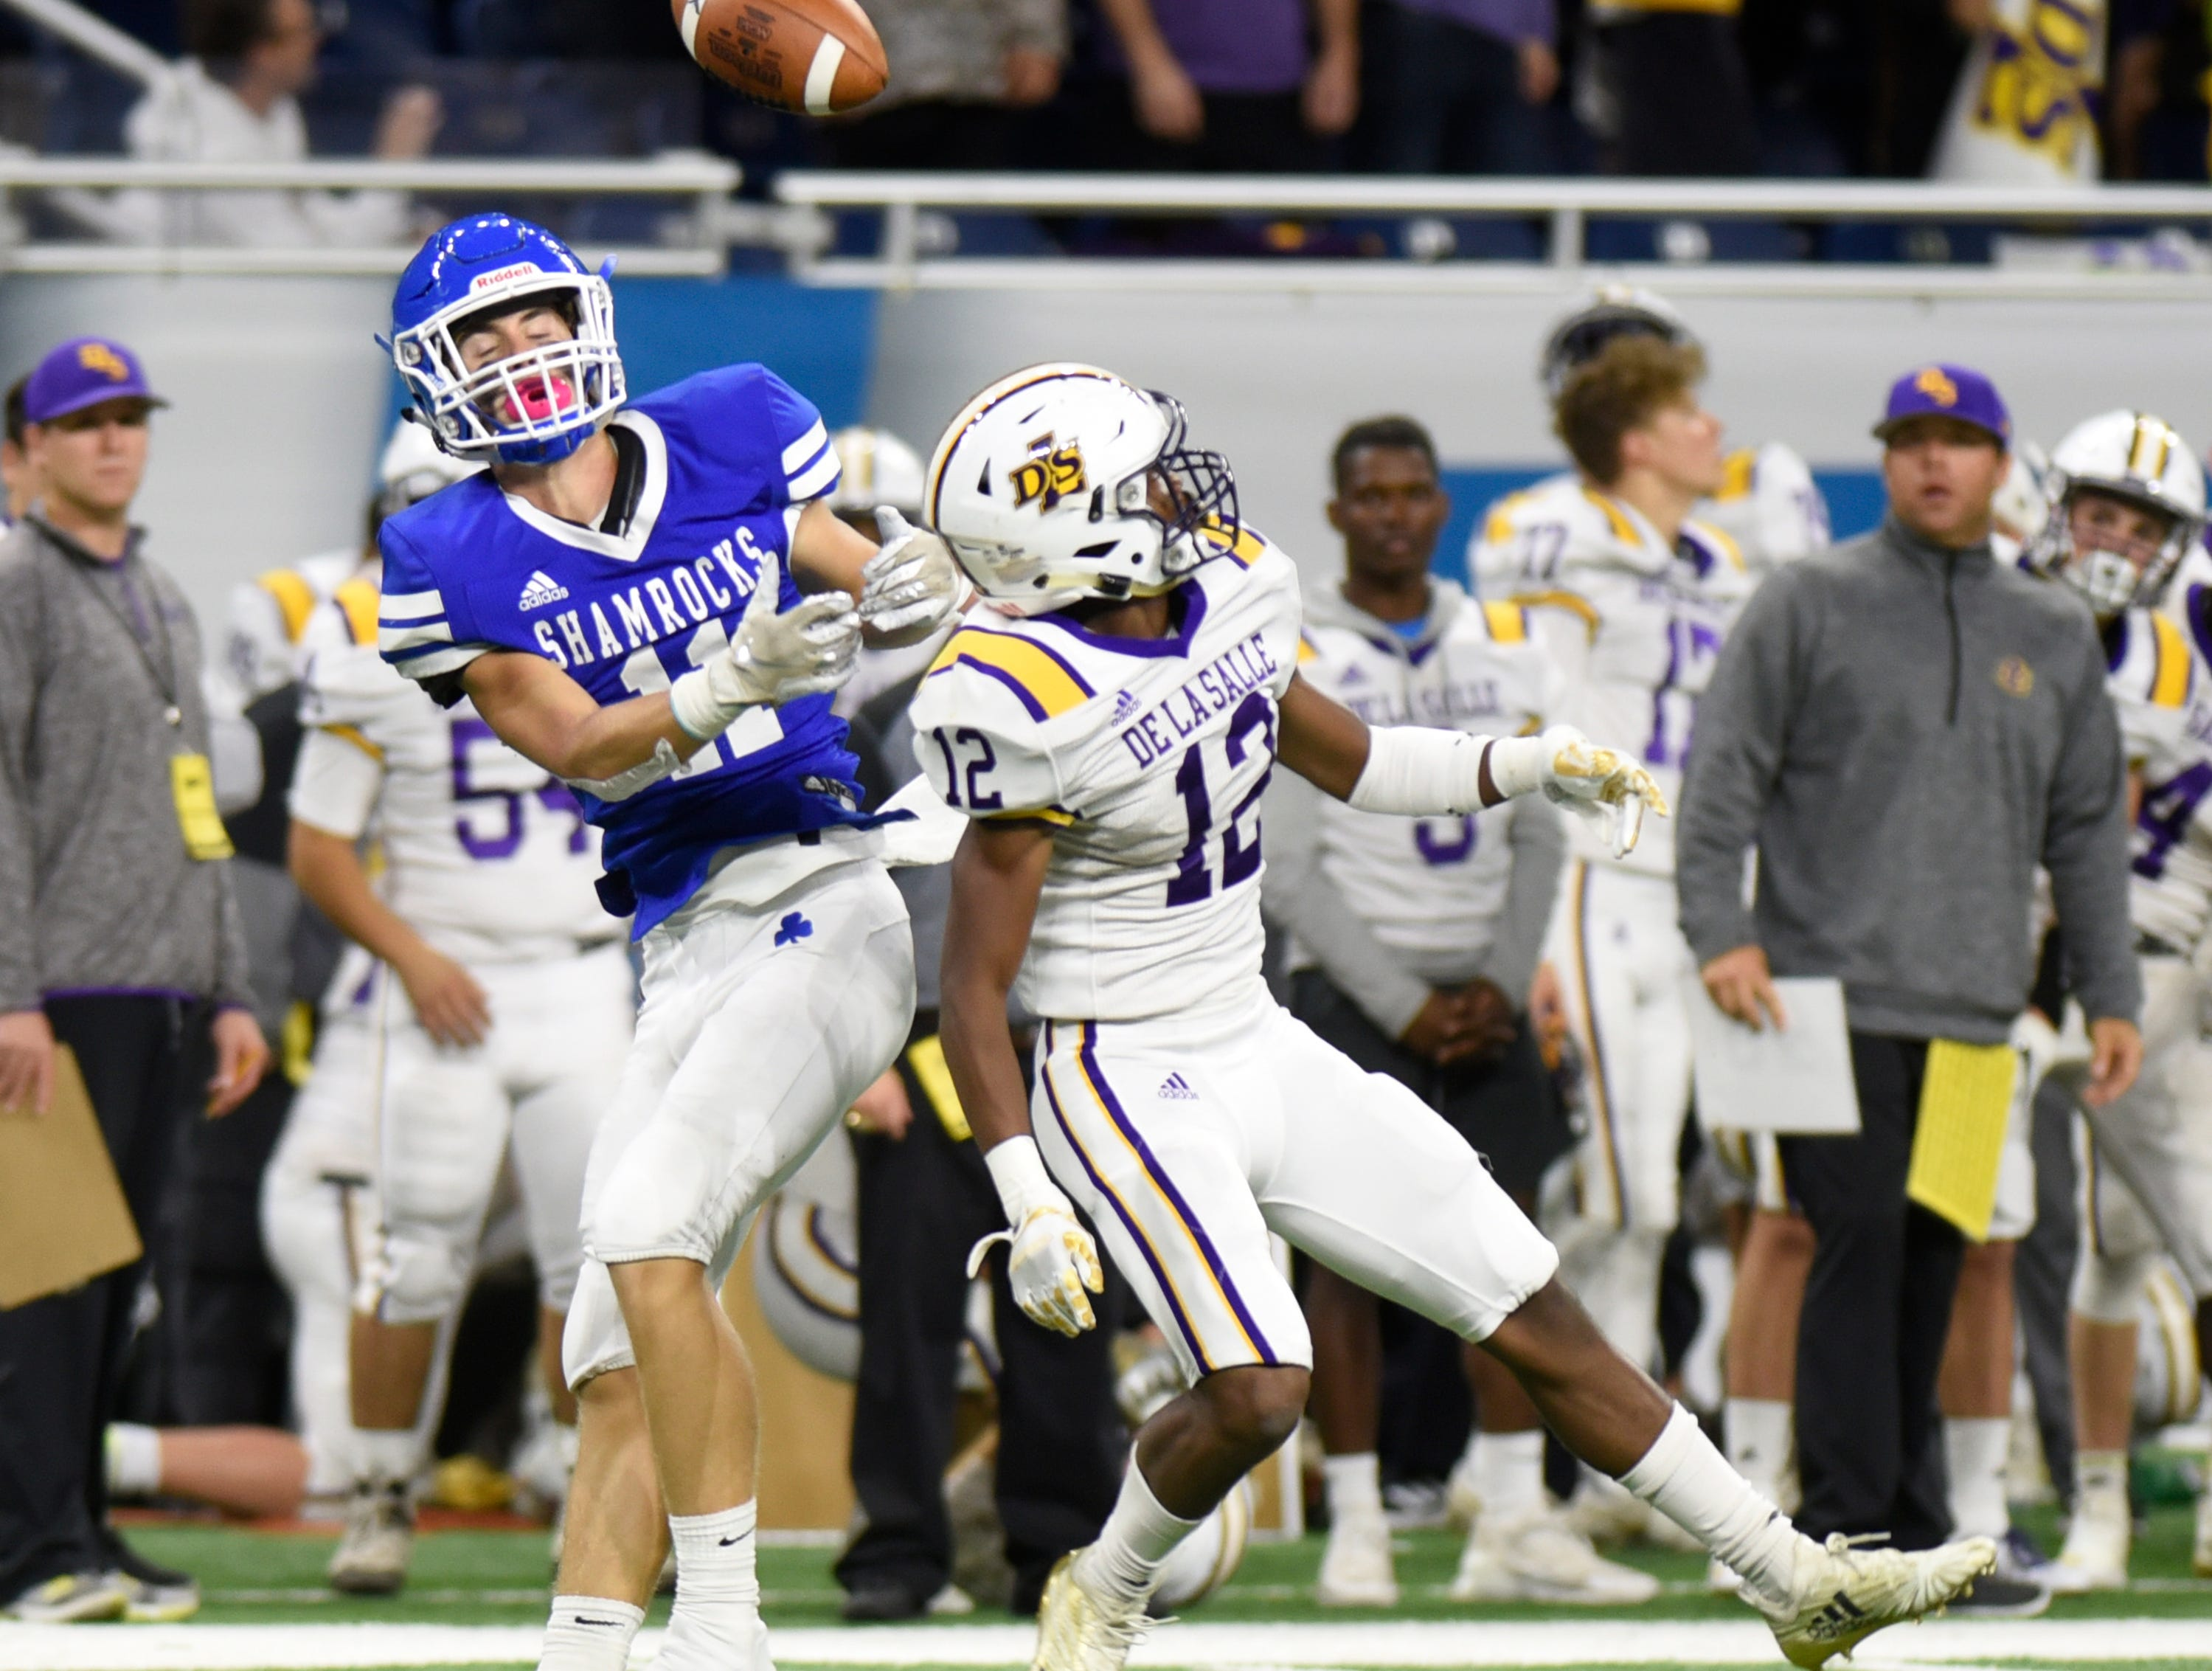 Detroit Catholic Central's Nate Anderson (11) can't bring in this pass while being defended by Warren De La Salle defensive back Rickey Pearson II (12) during the Catholic League Prep Bowl AB Division championship game at Ford Field Oct. 20, 2018.